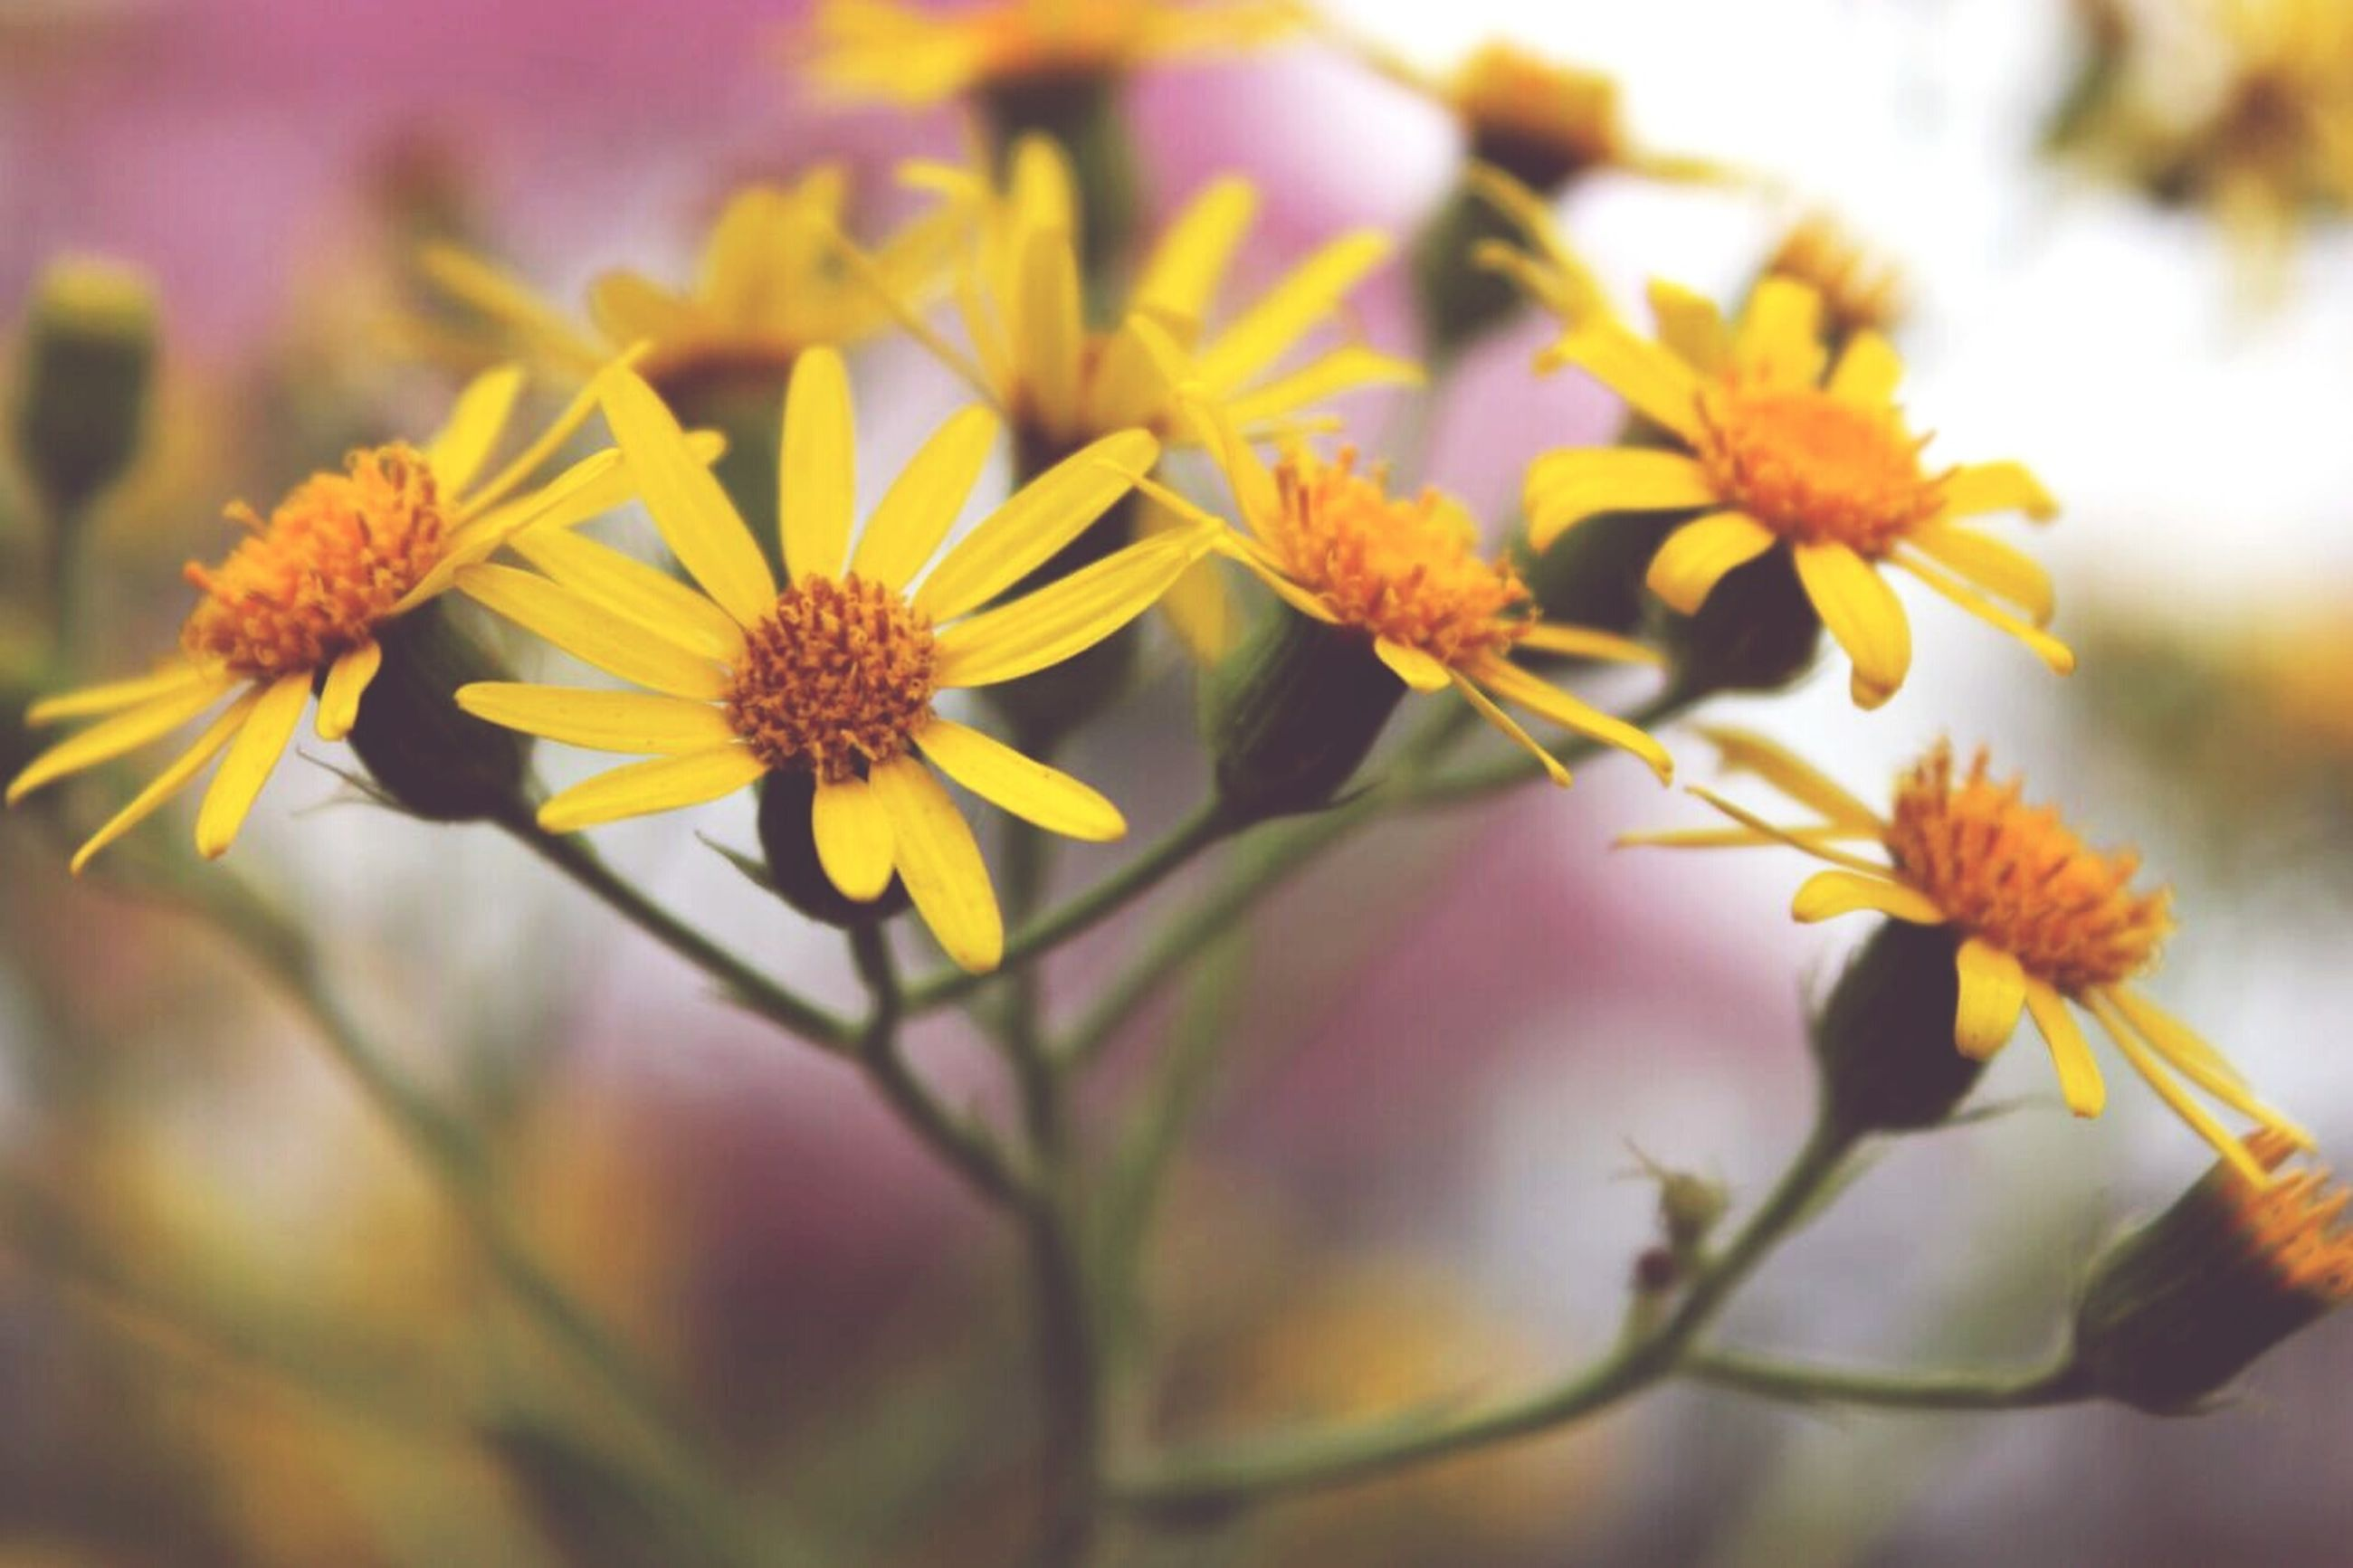 flower, freshness, fragility, growth, beauty in nature, petal, close-up, flower head, stem, focus on foreground, nature, blossom, springtime, plant, in bloom, yellow, botany, day, outdoors, bloom, no people, pollen, blooming, pink color